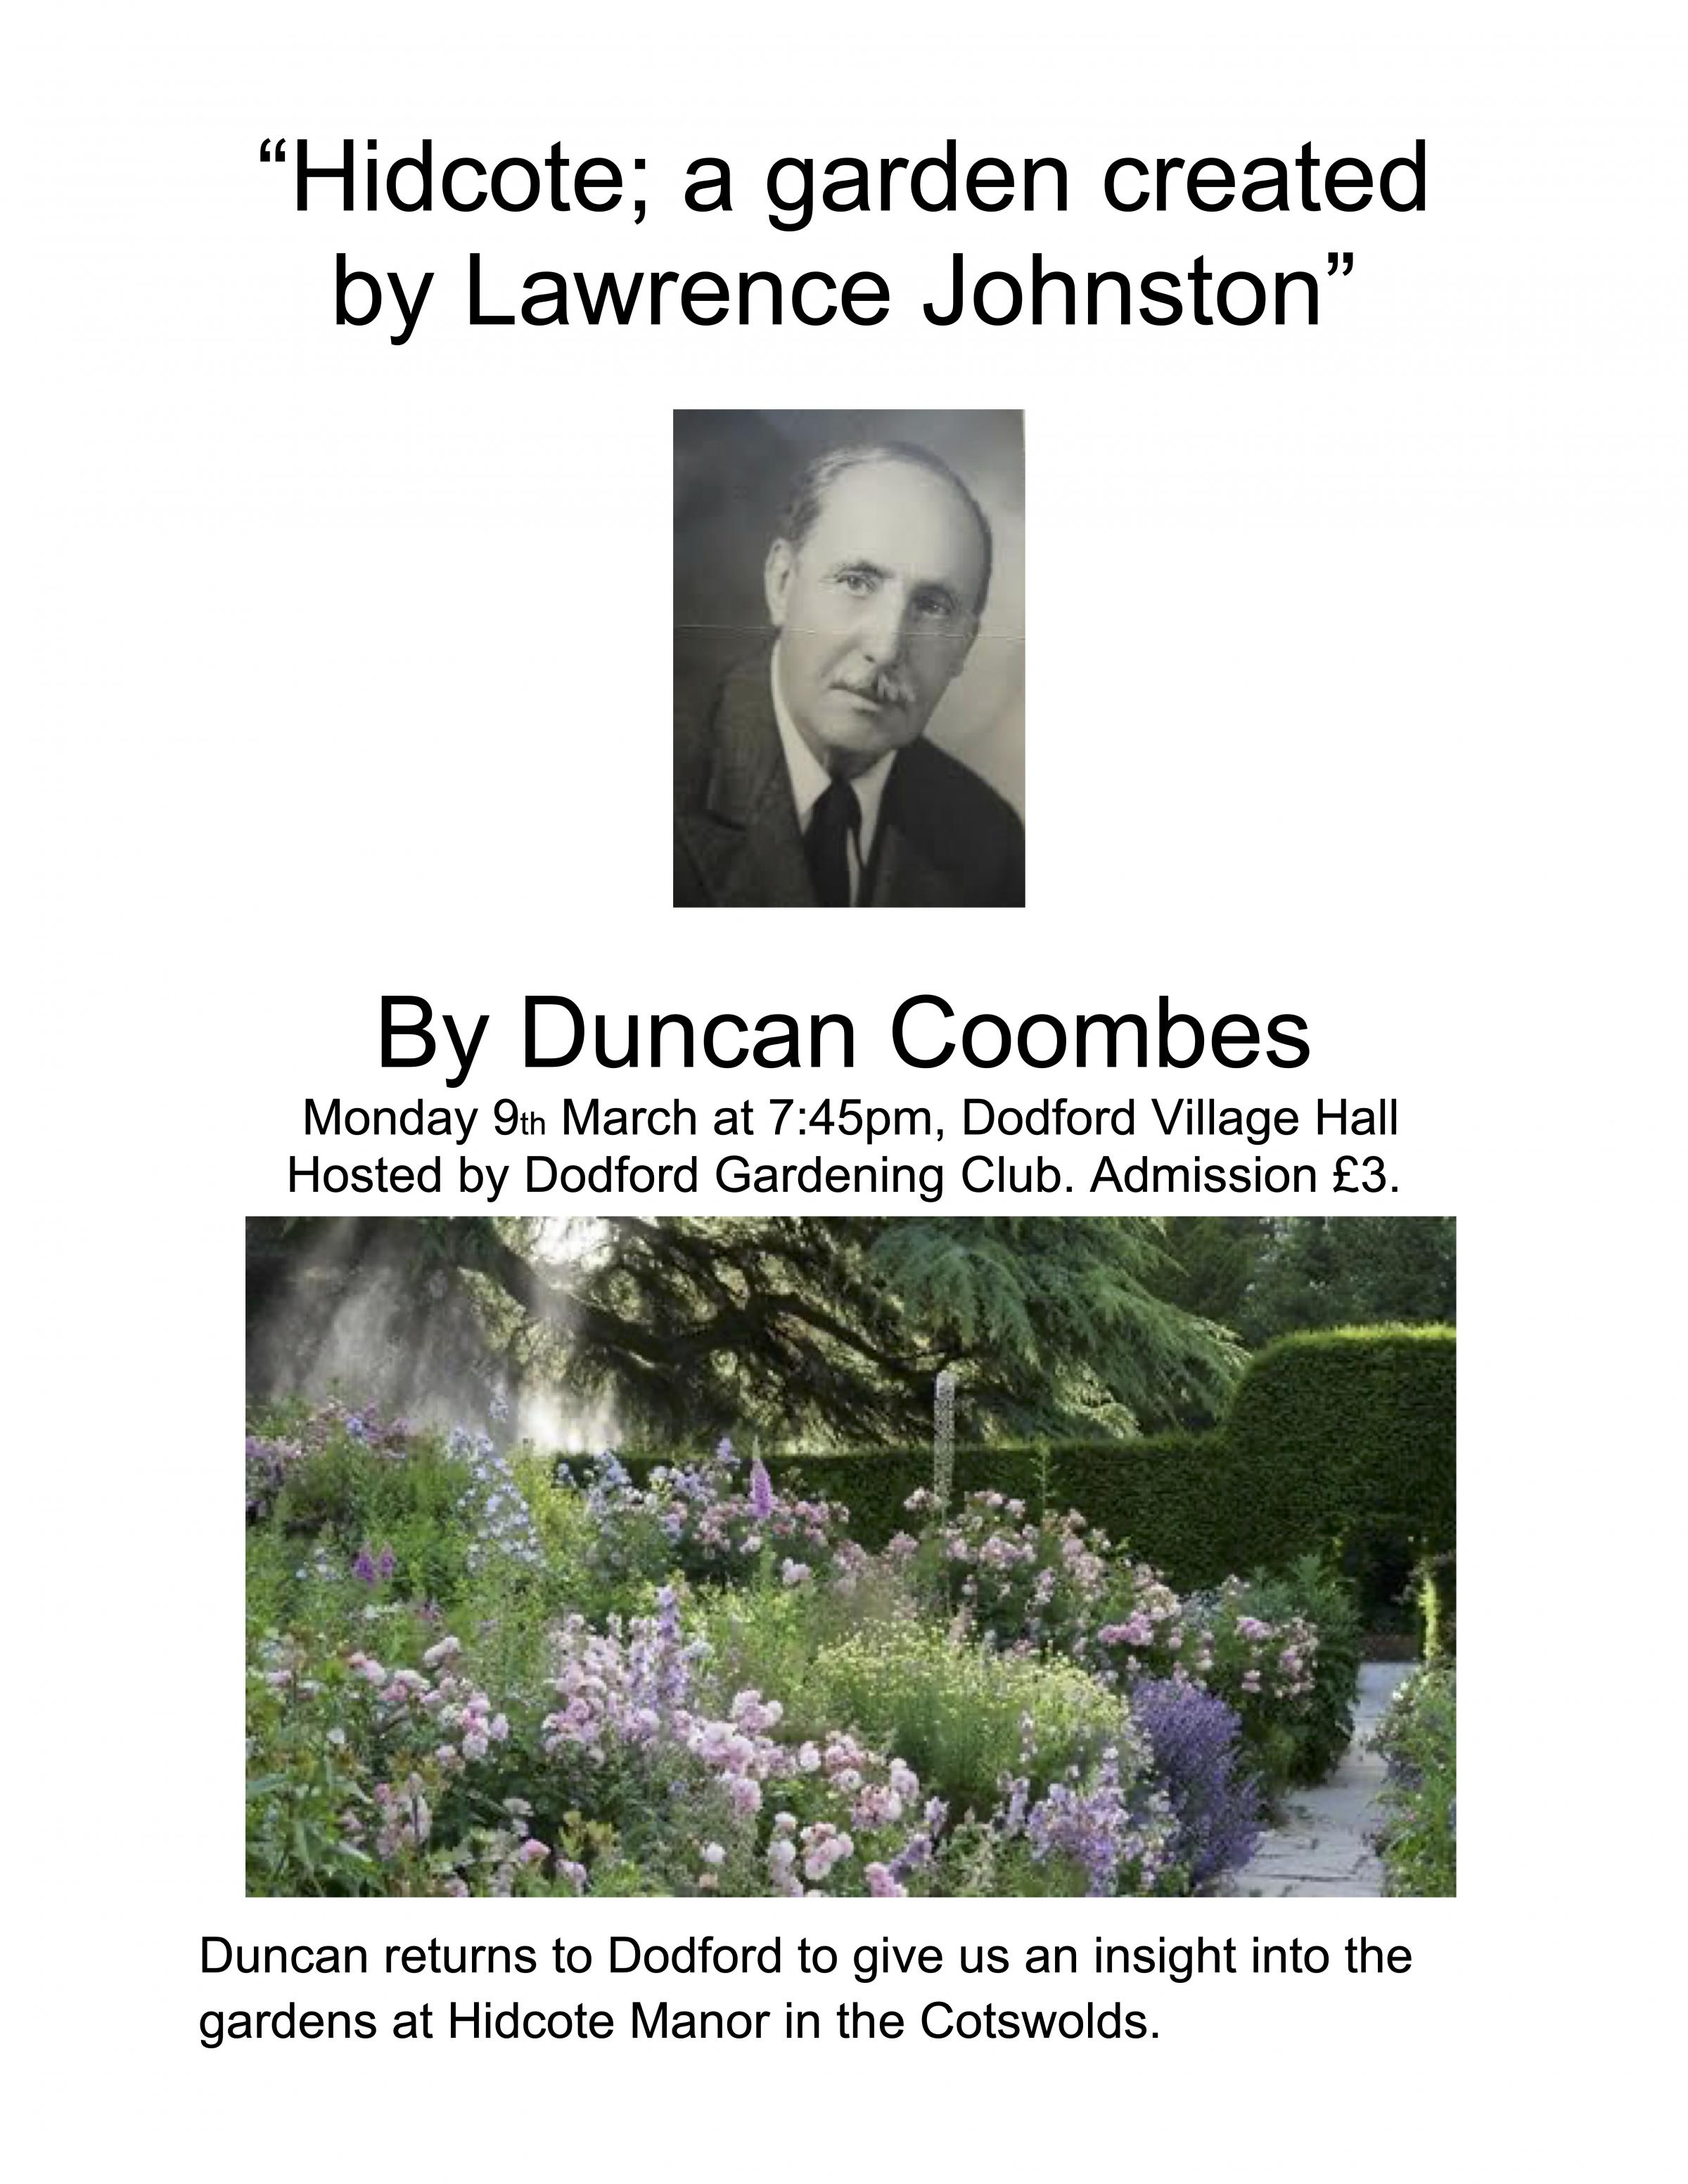 Dodford Gardening Club - Hidcote; a garden created by Lawerence Johnston